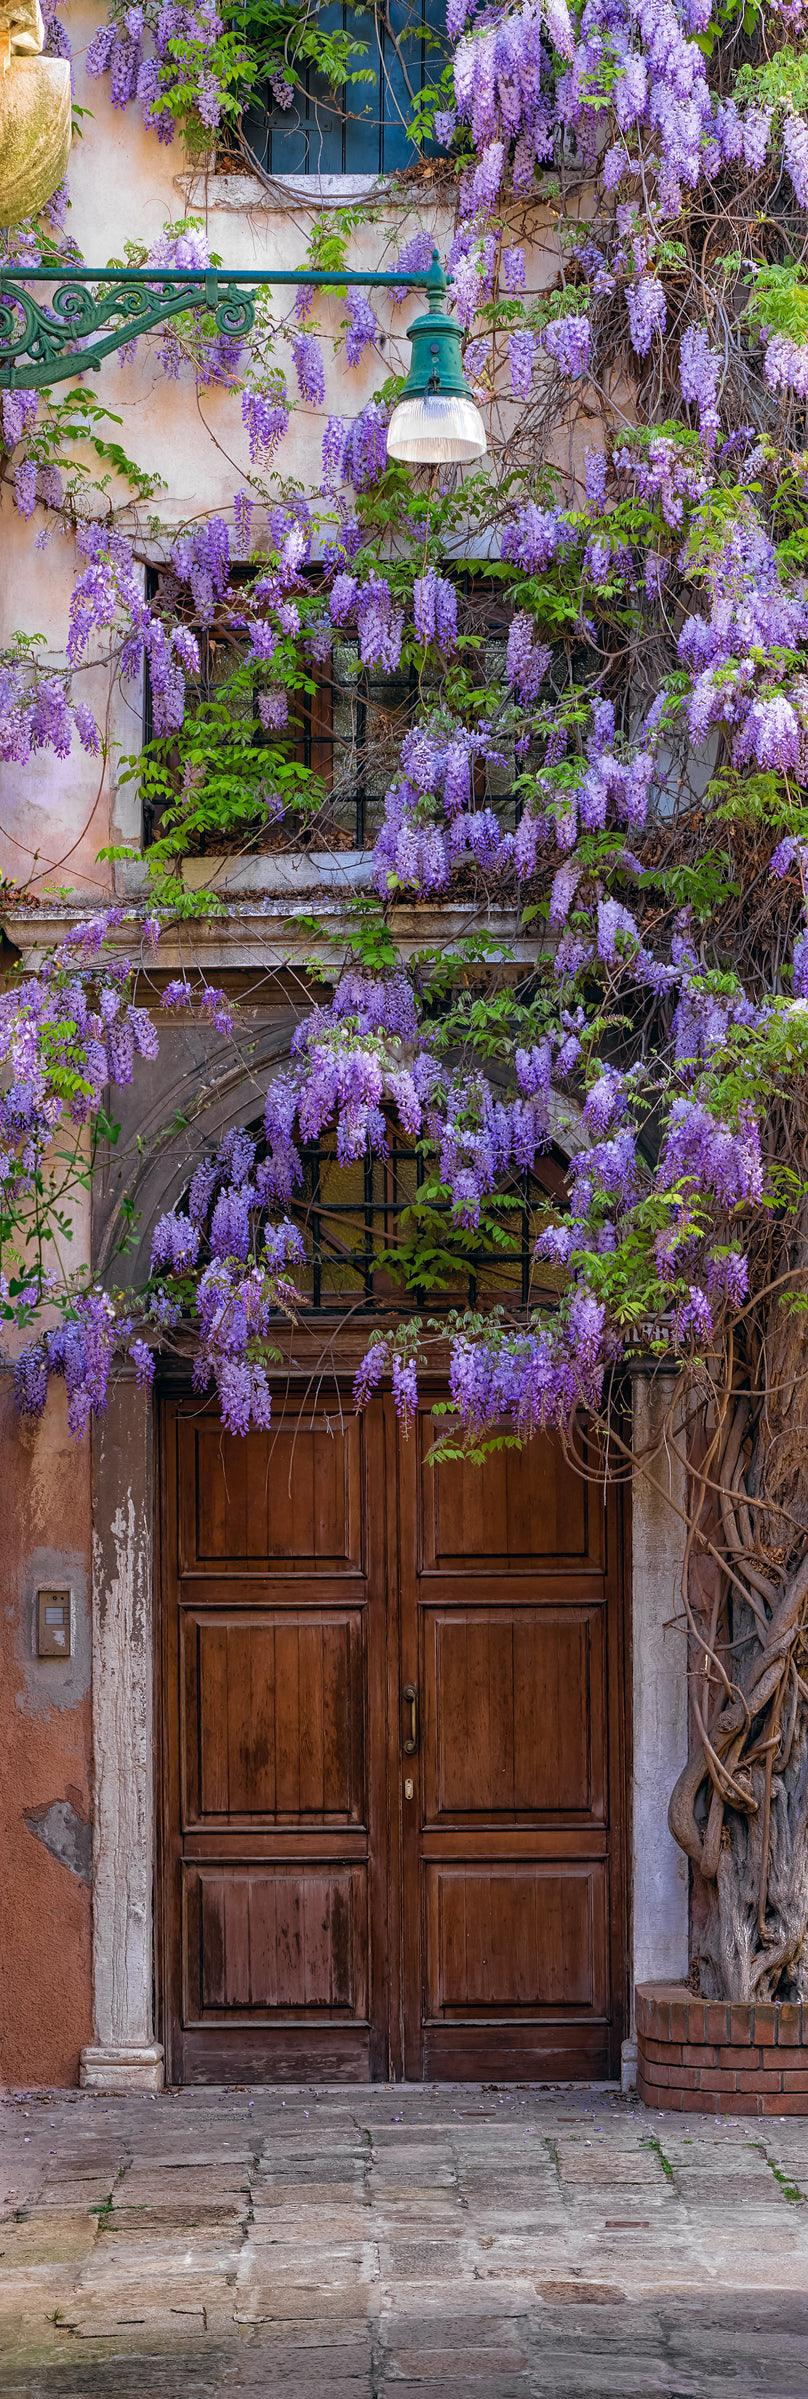 Purple flowers of the creeping Wisteria hanging over the doorway of an old building in Venice Italy